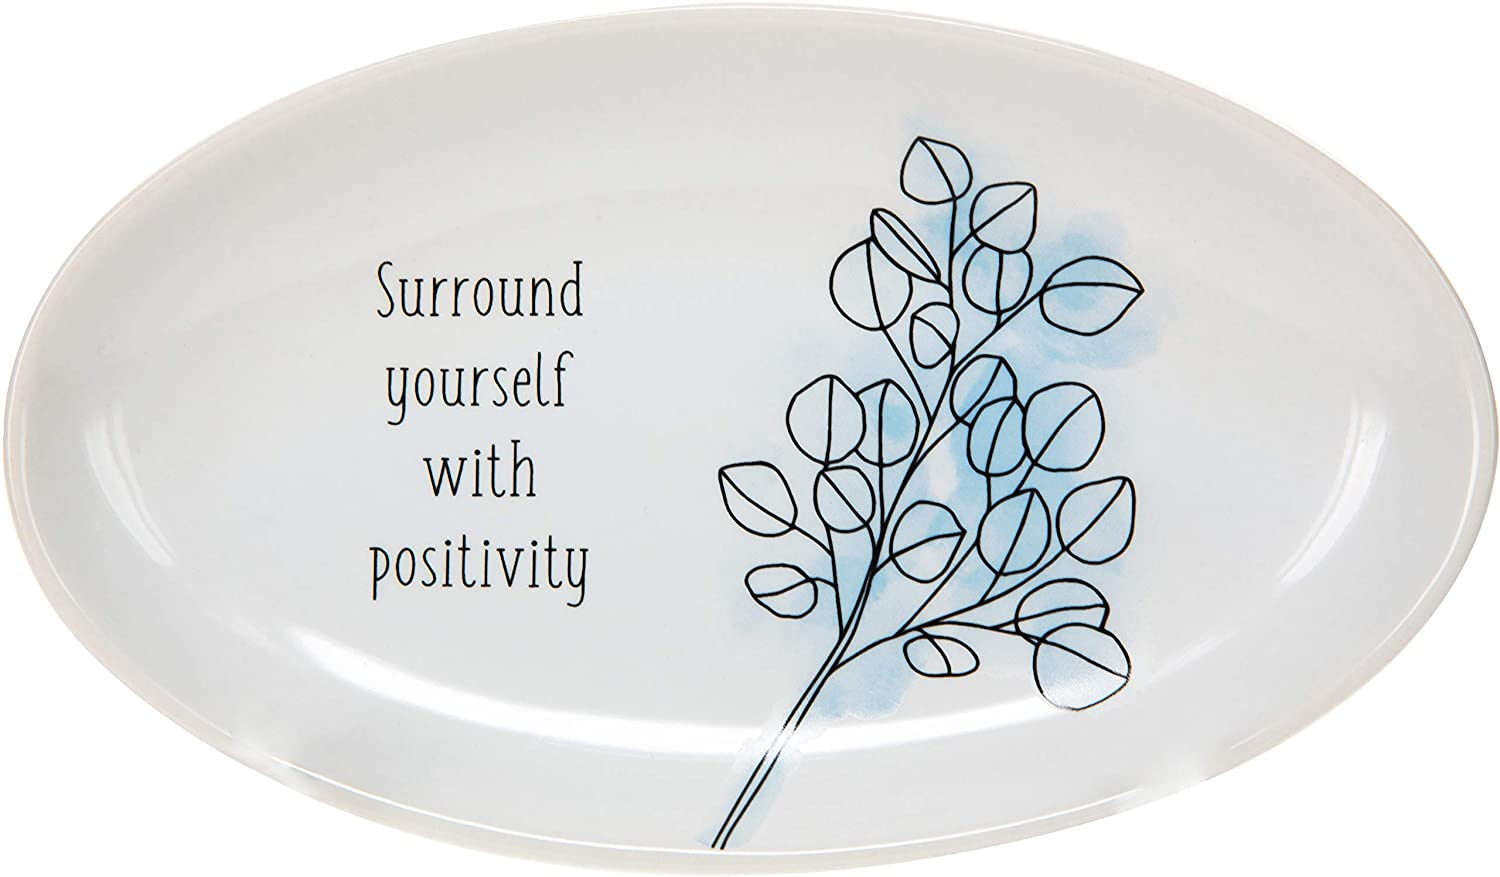 Pavilion Gift Company Surround Yourself with Positivity - Floral 5.5